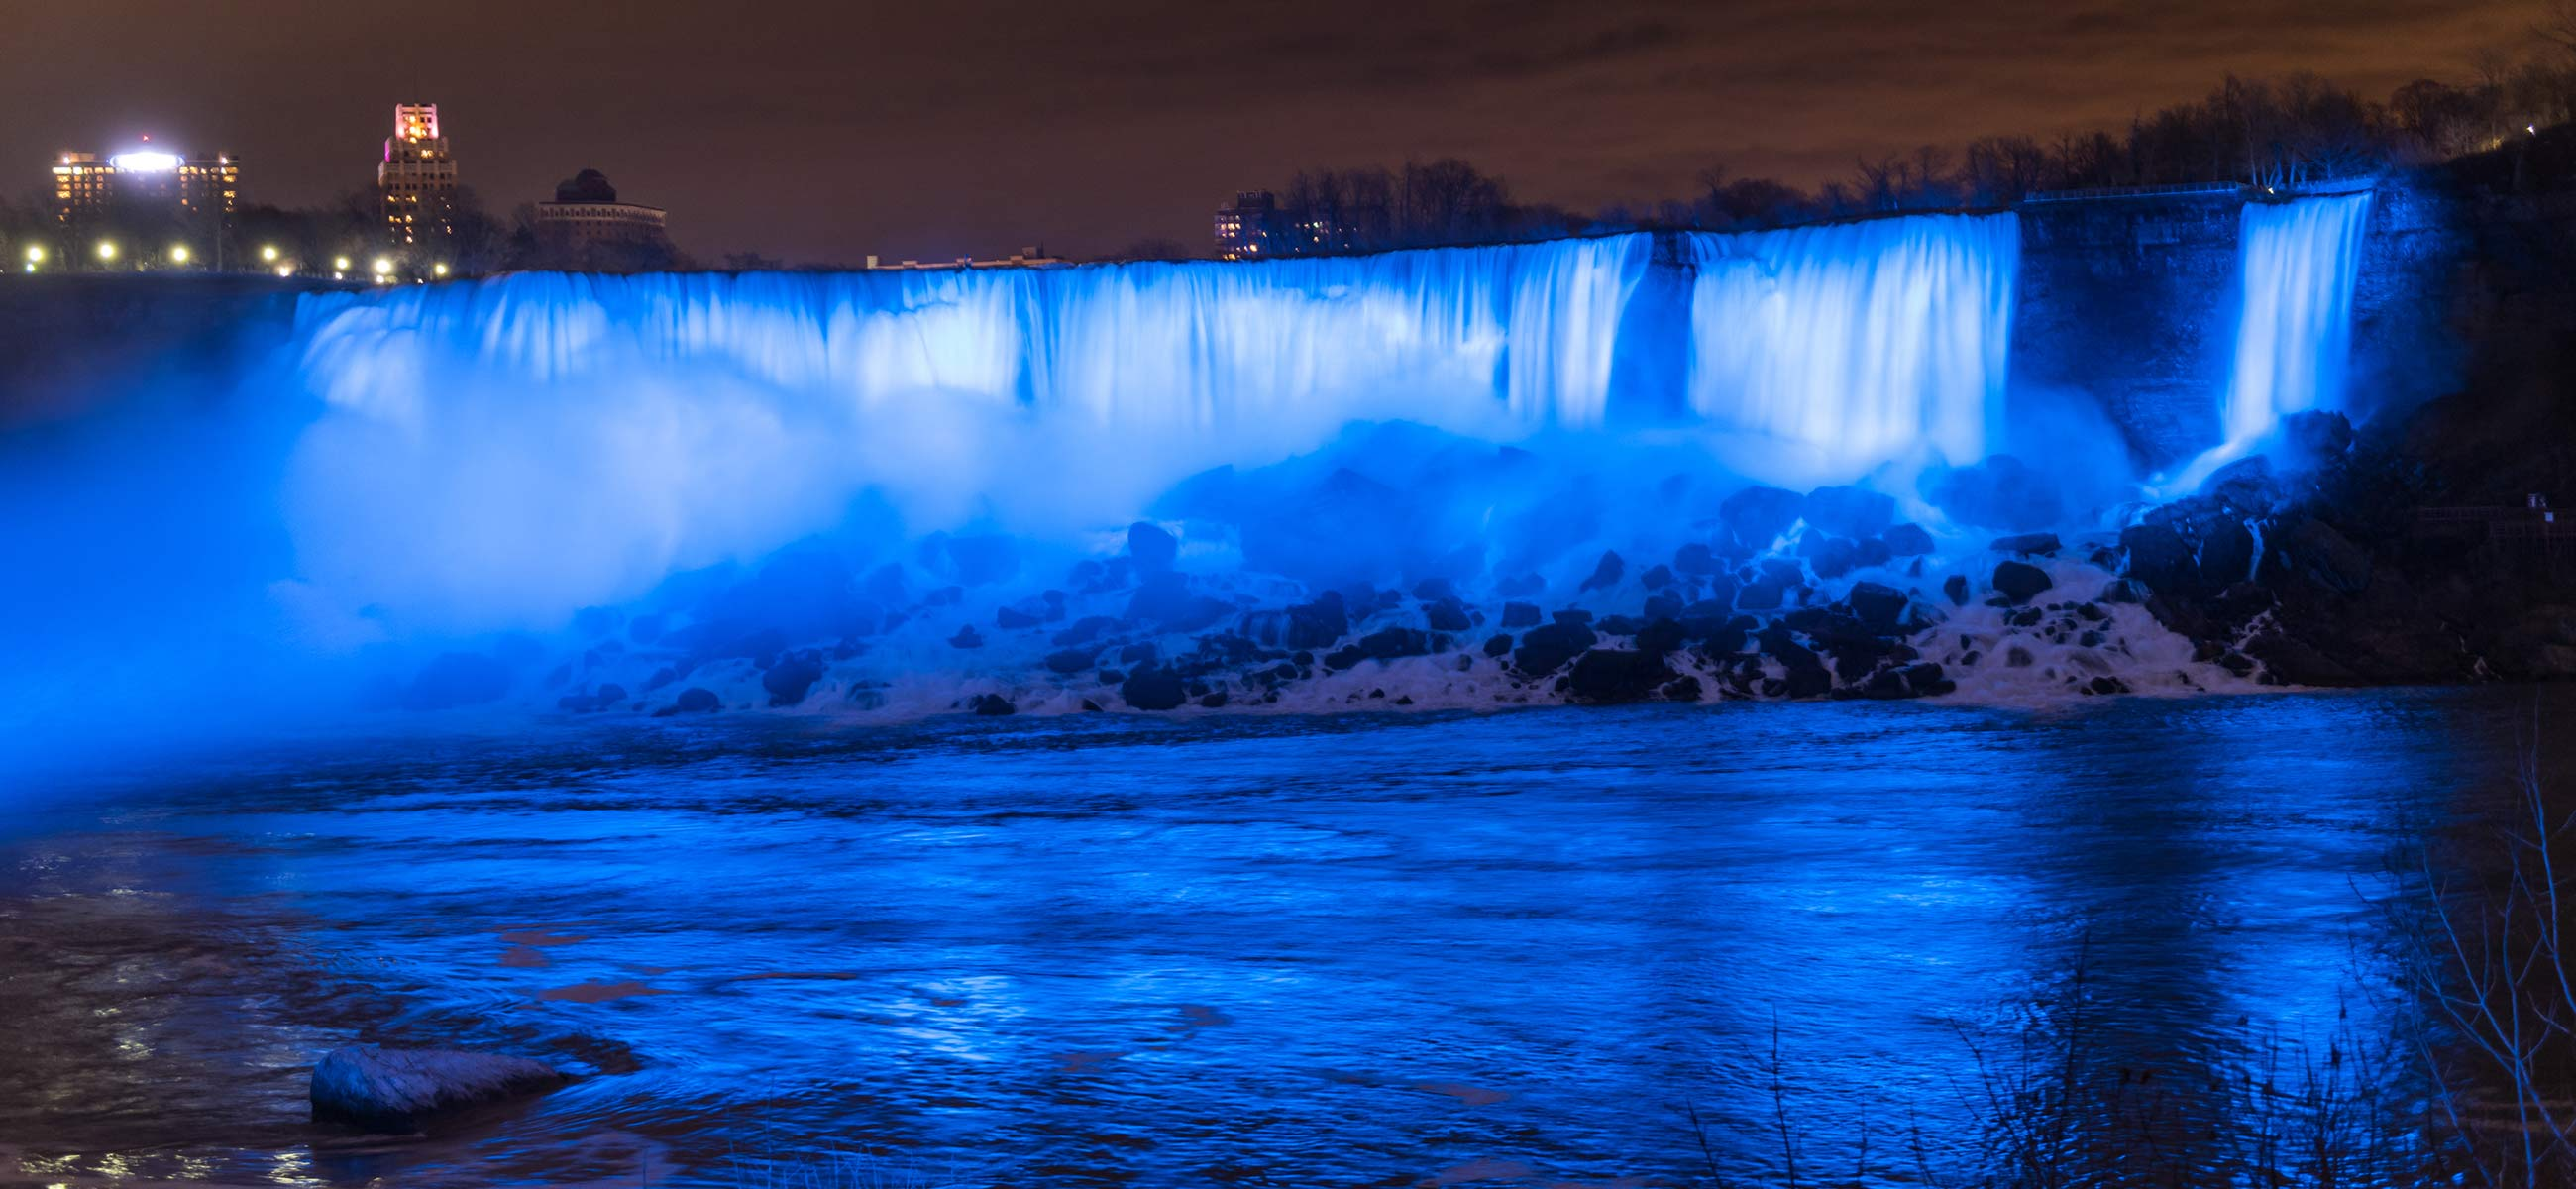 Niagara Falls to be Illuminated in Blue in Recognition of International Nurses Day